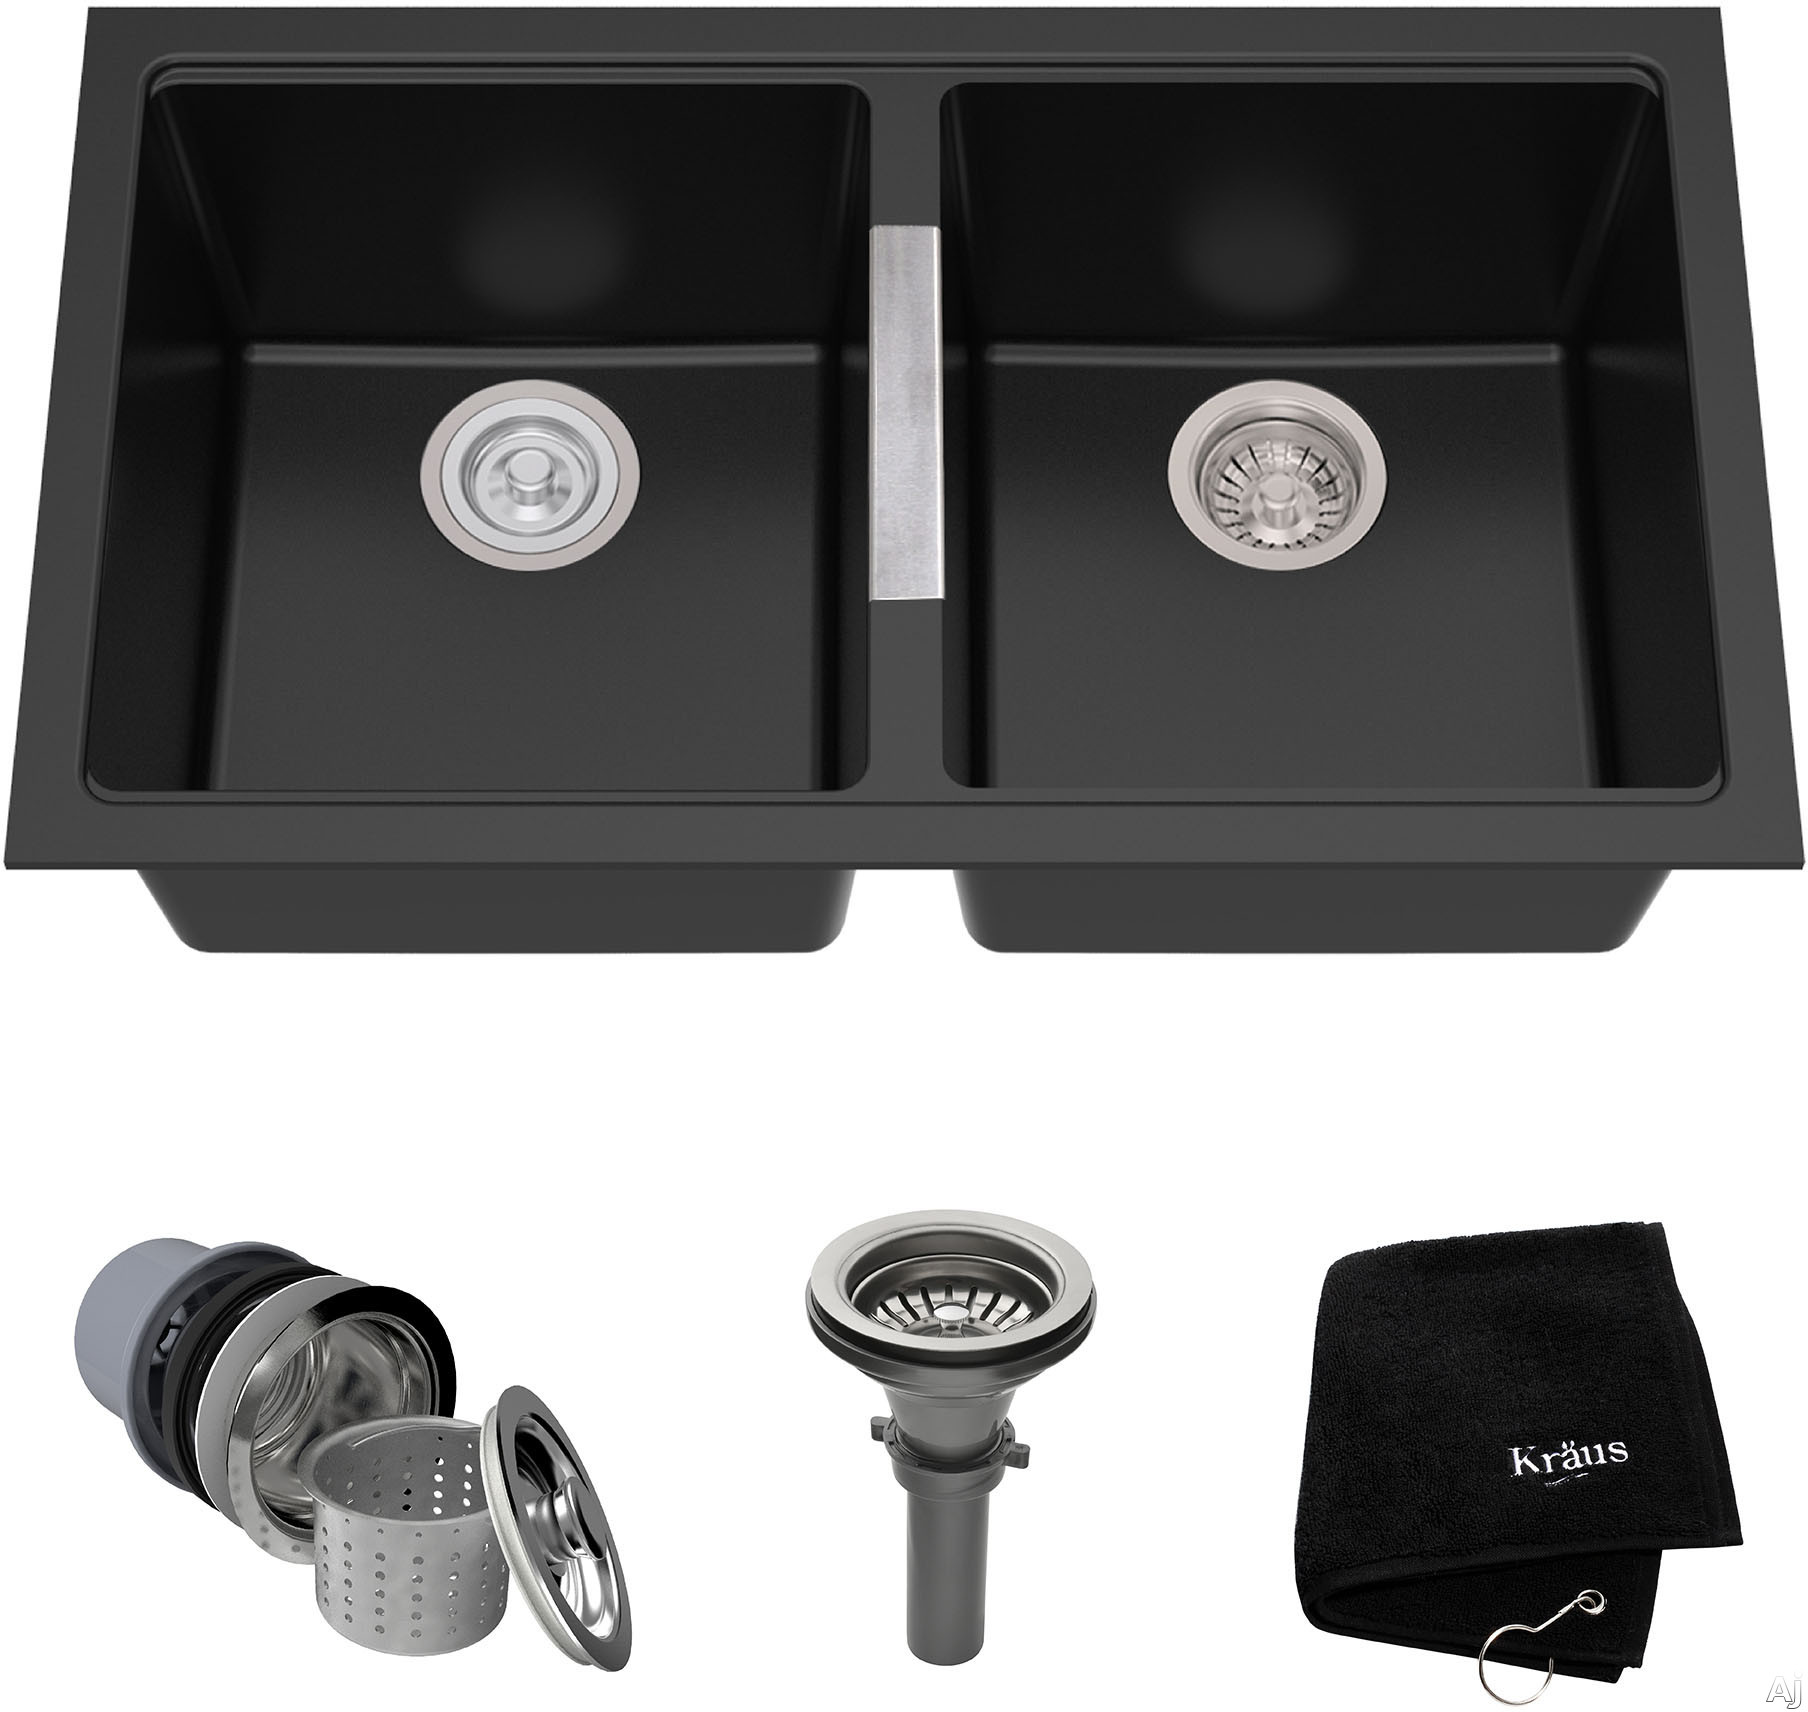 Image of Kraus Kitchen Sink Series KGU434B 33 Inch Undermount 50/50 Double Bowl Granite Kitchen Sink with 9 1/2 Inch Bowl Depths, Heat Resistant, Easy to Clean Surface and Naturally Quiet